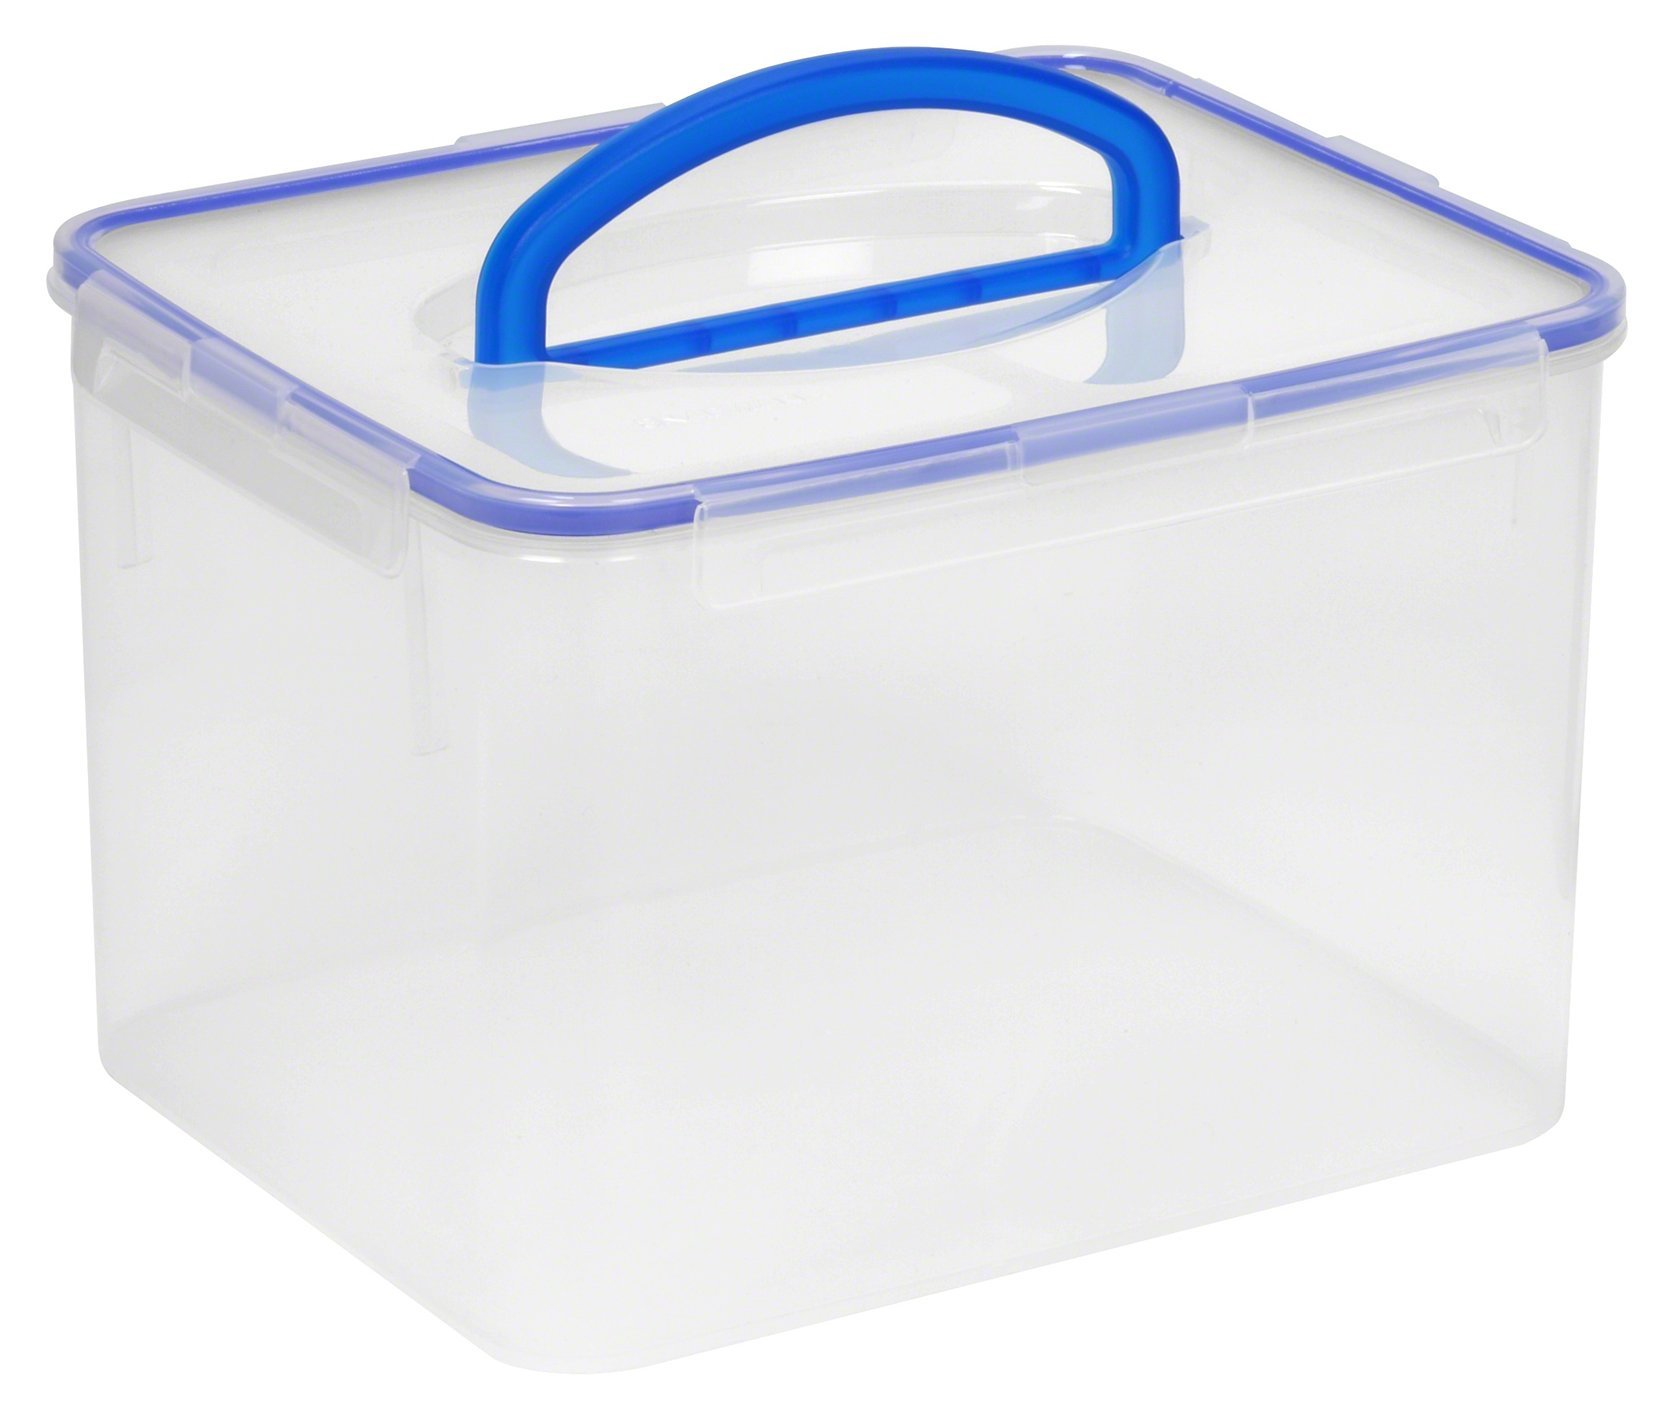 Snapware Airtight 29-Cup Rectangular Food Storage Container